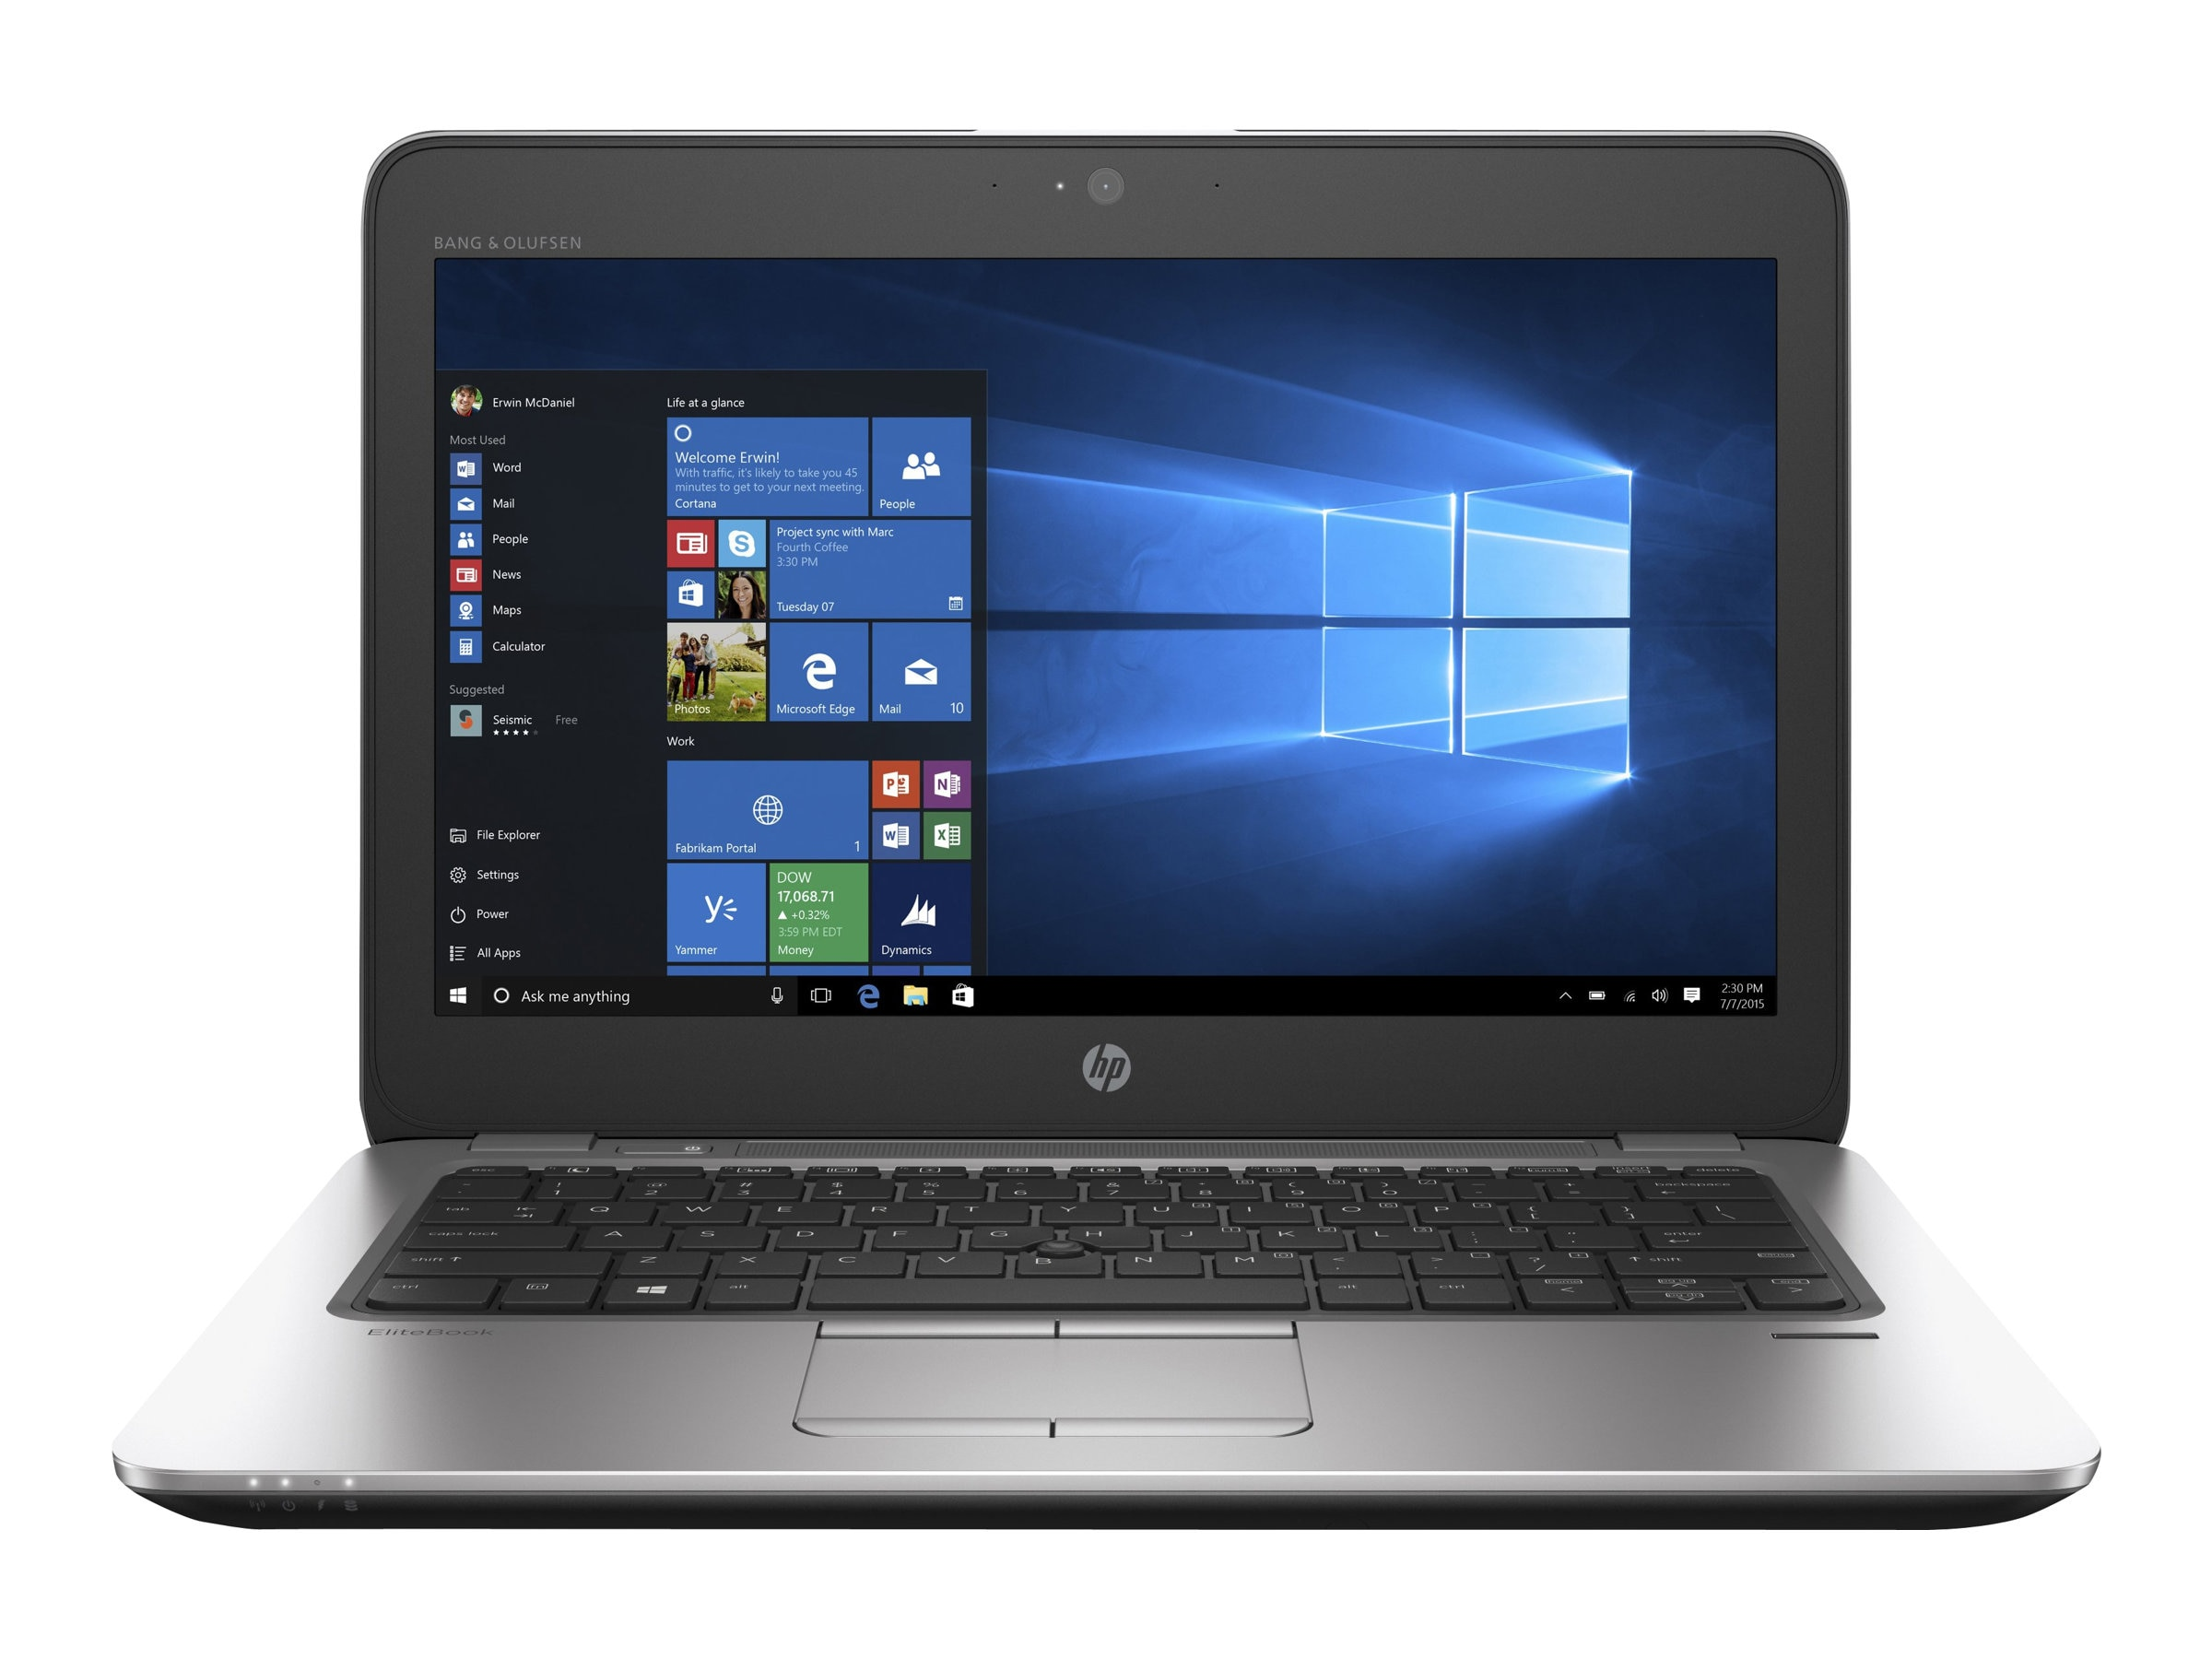 HP EliteBook 820 G3 2.4GHz Core i5 12.5in display, V1H01UA#ABA